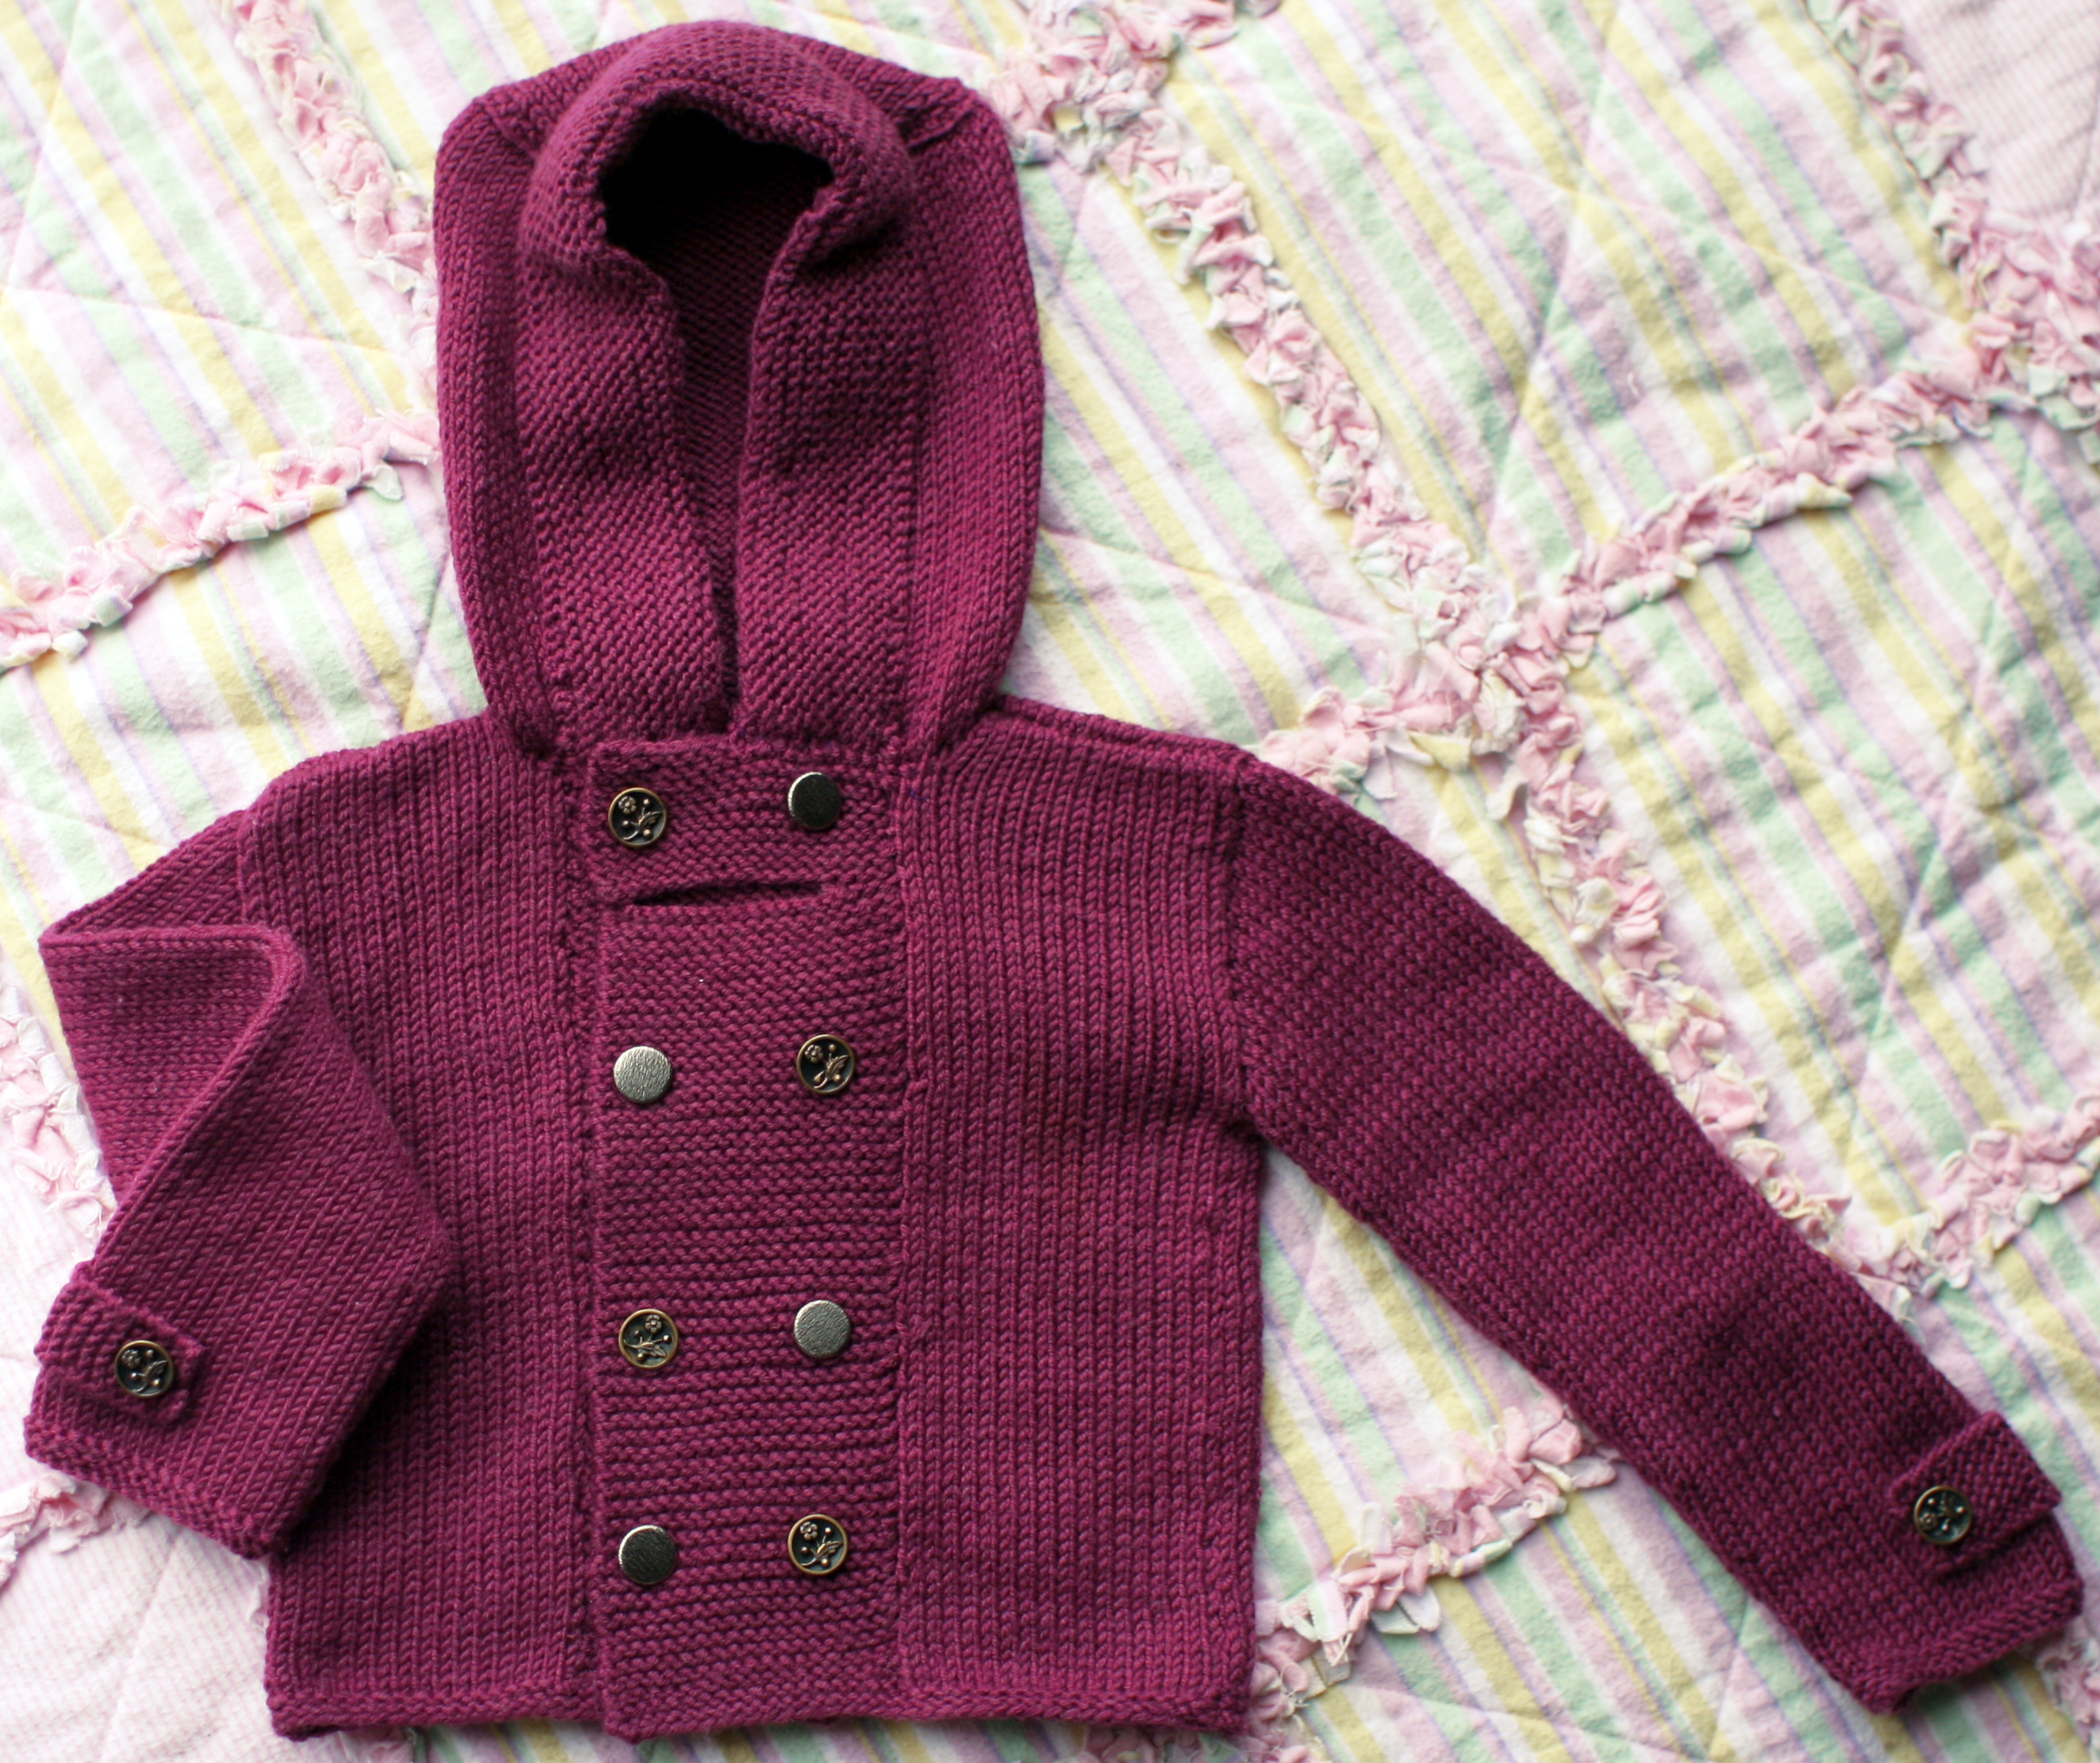 Knitting Pattern For Toddler Duffle Coat : DIY Knitted Duffle Coat Domesticspace